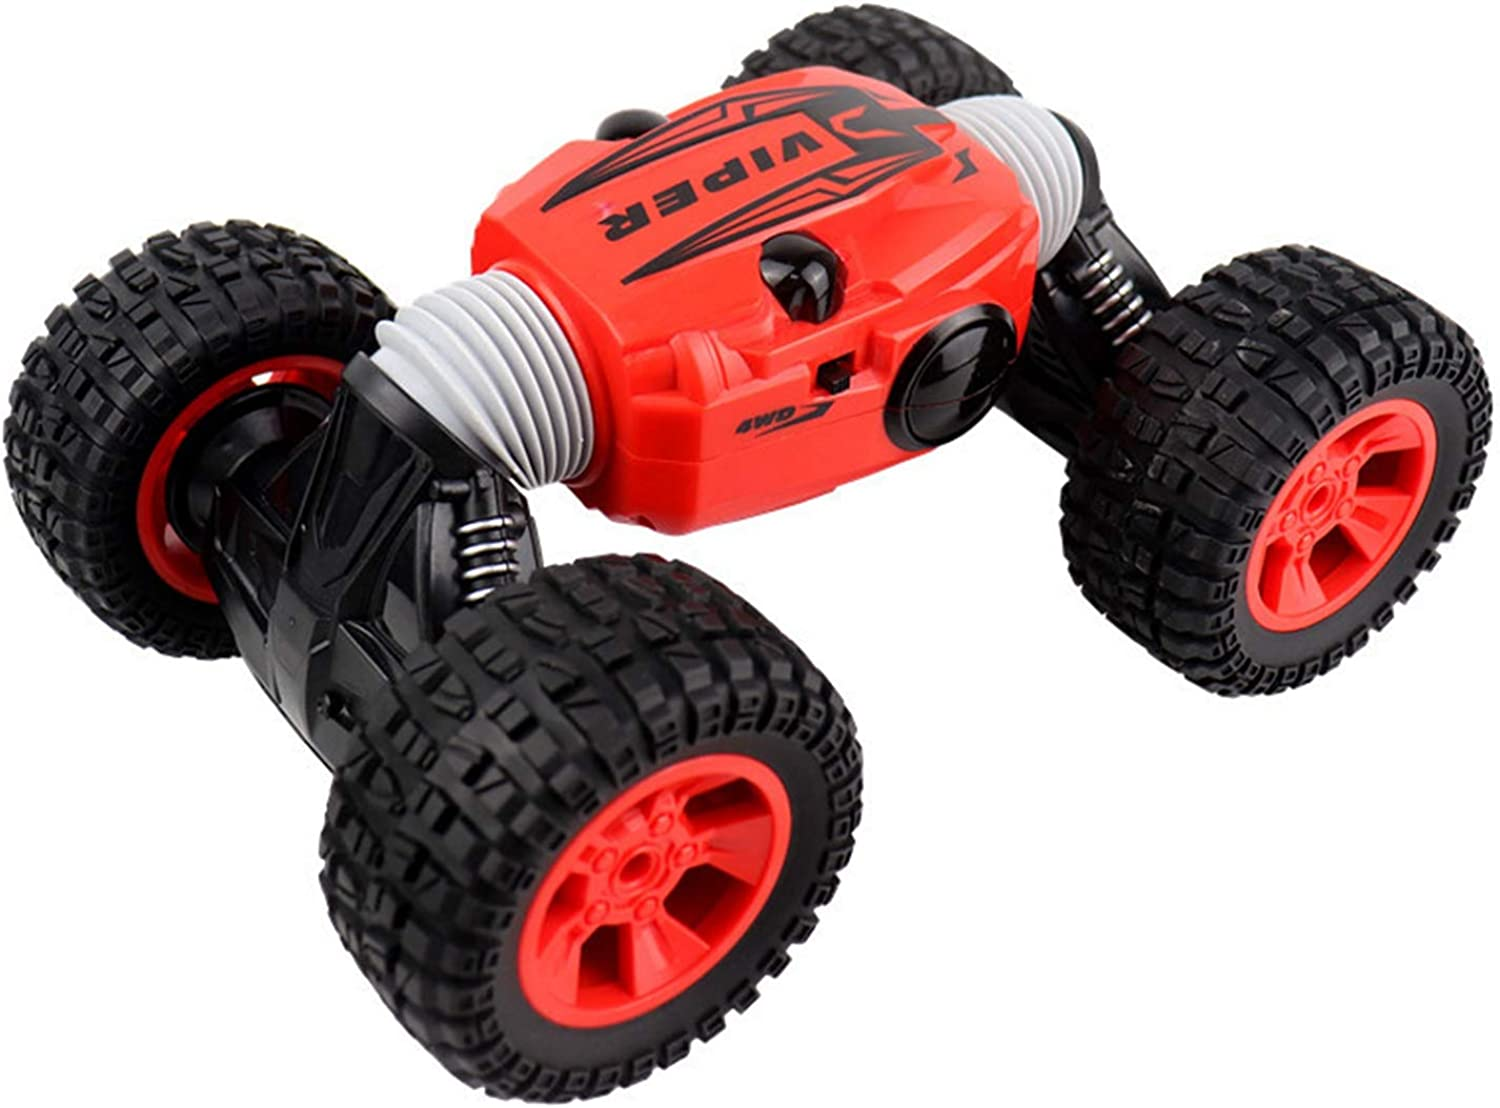 TOOGOO Rc Car 1 16 Scale DoubleSided 2.4Ghz One Key Transform AllTerrain OffRoad Vehicle Climbing Truck Remote Control Car,Red